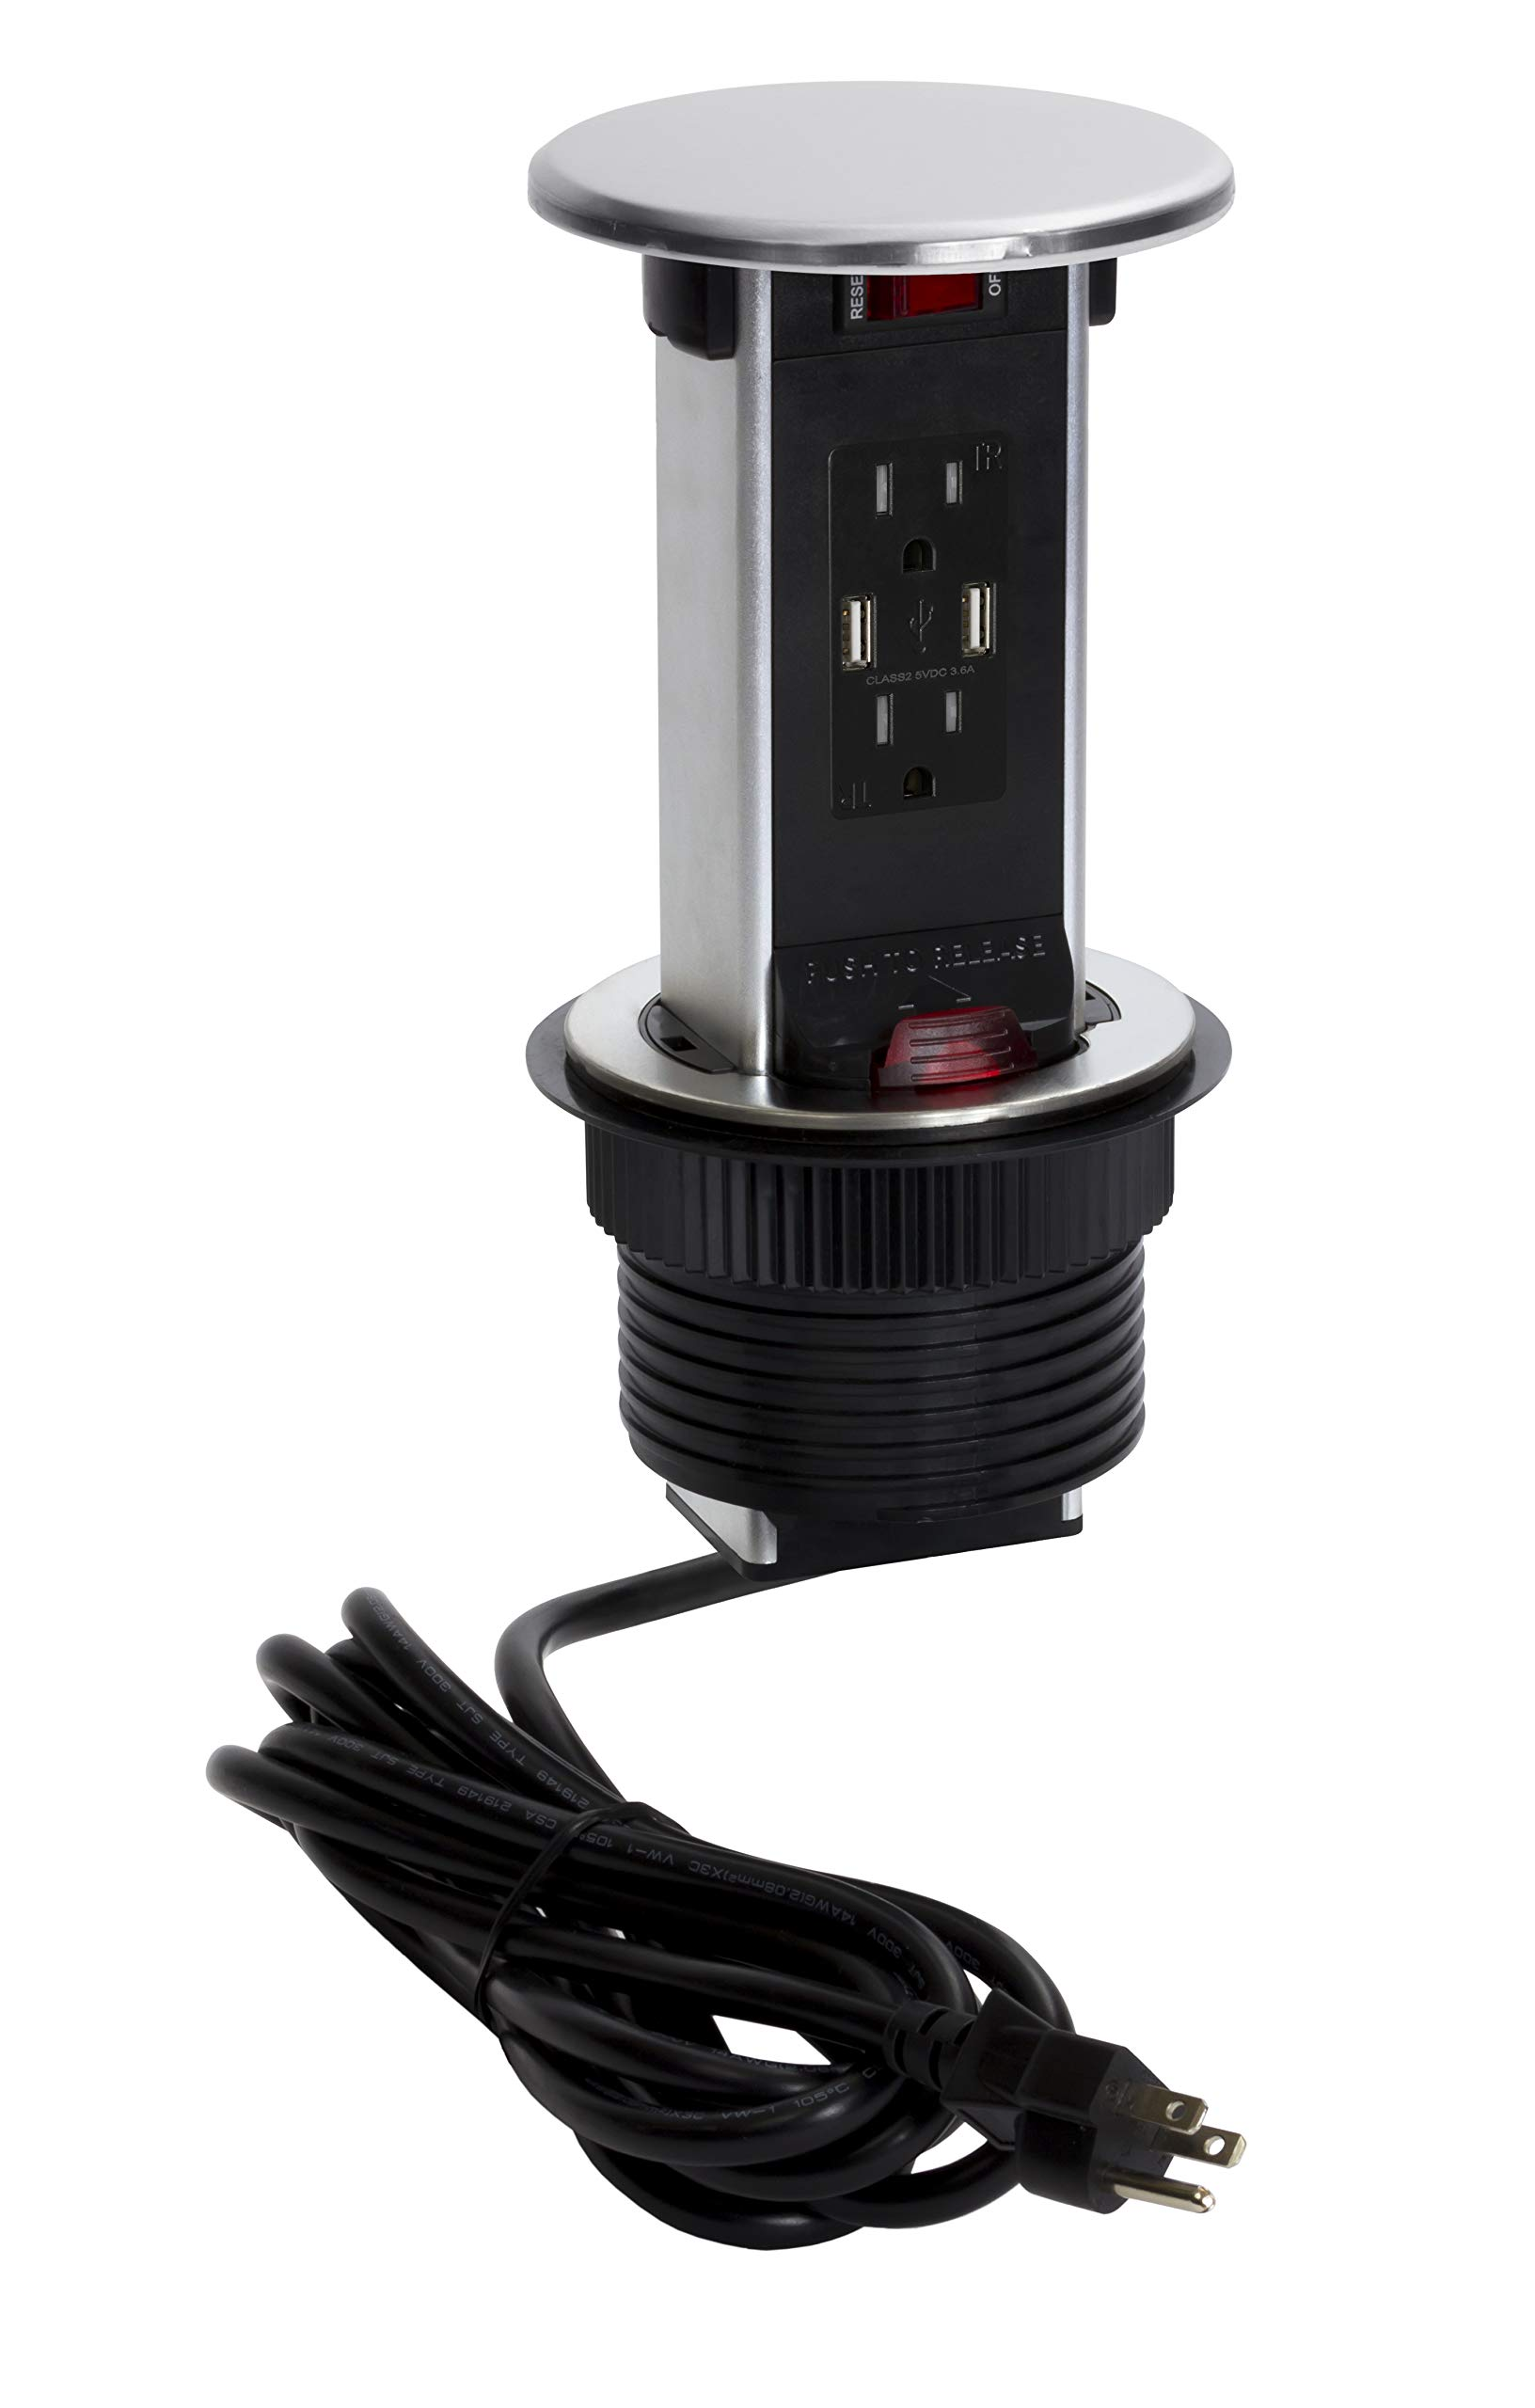 Lew Electric PUR15-S Round Countertop Pop Up 15 Amp Receptacles With USB Ports - Stainless Steel